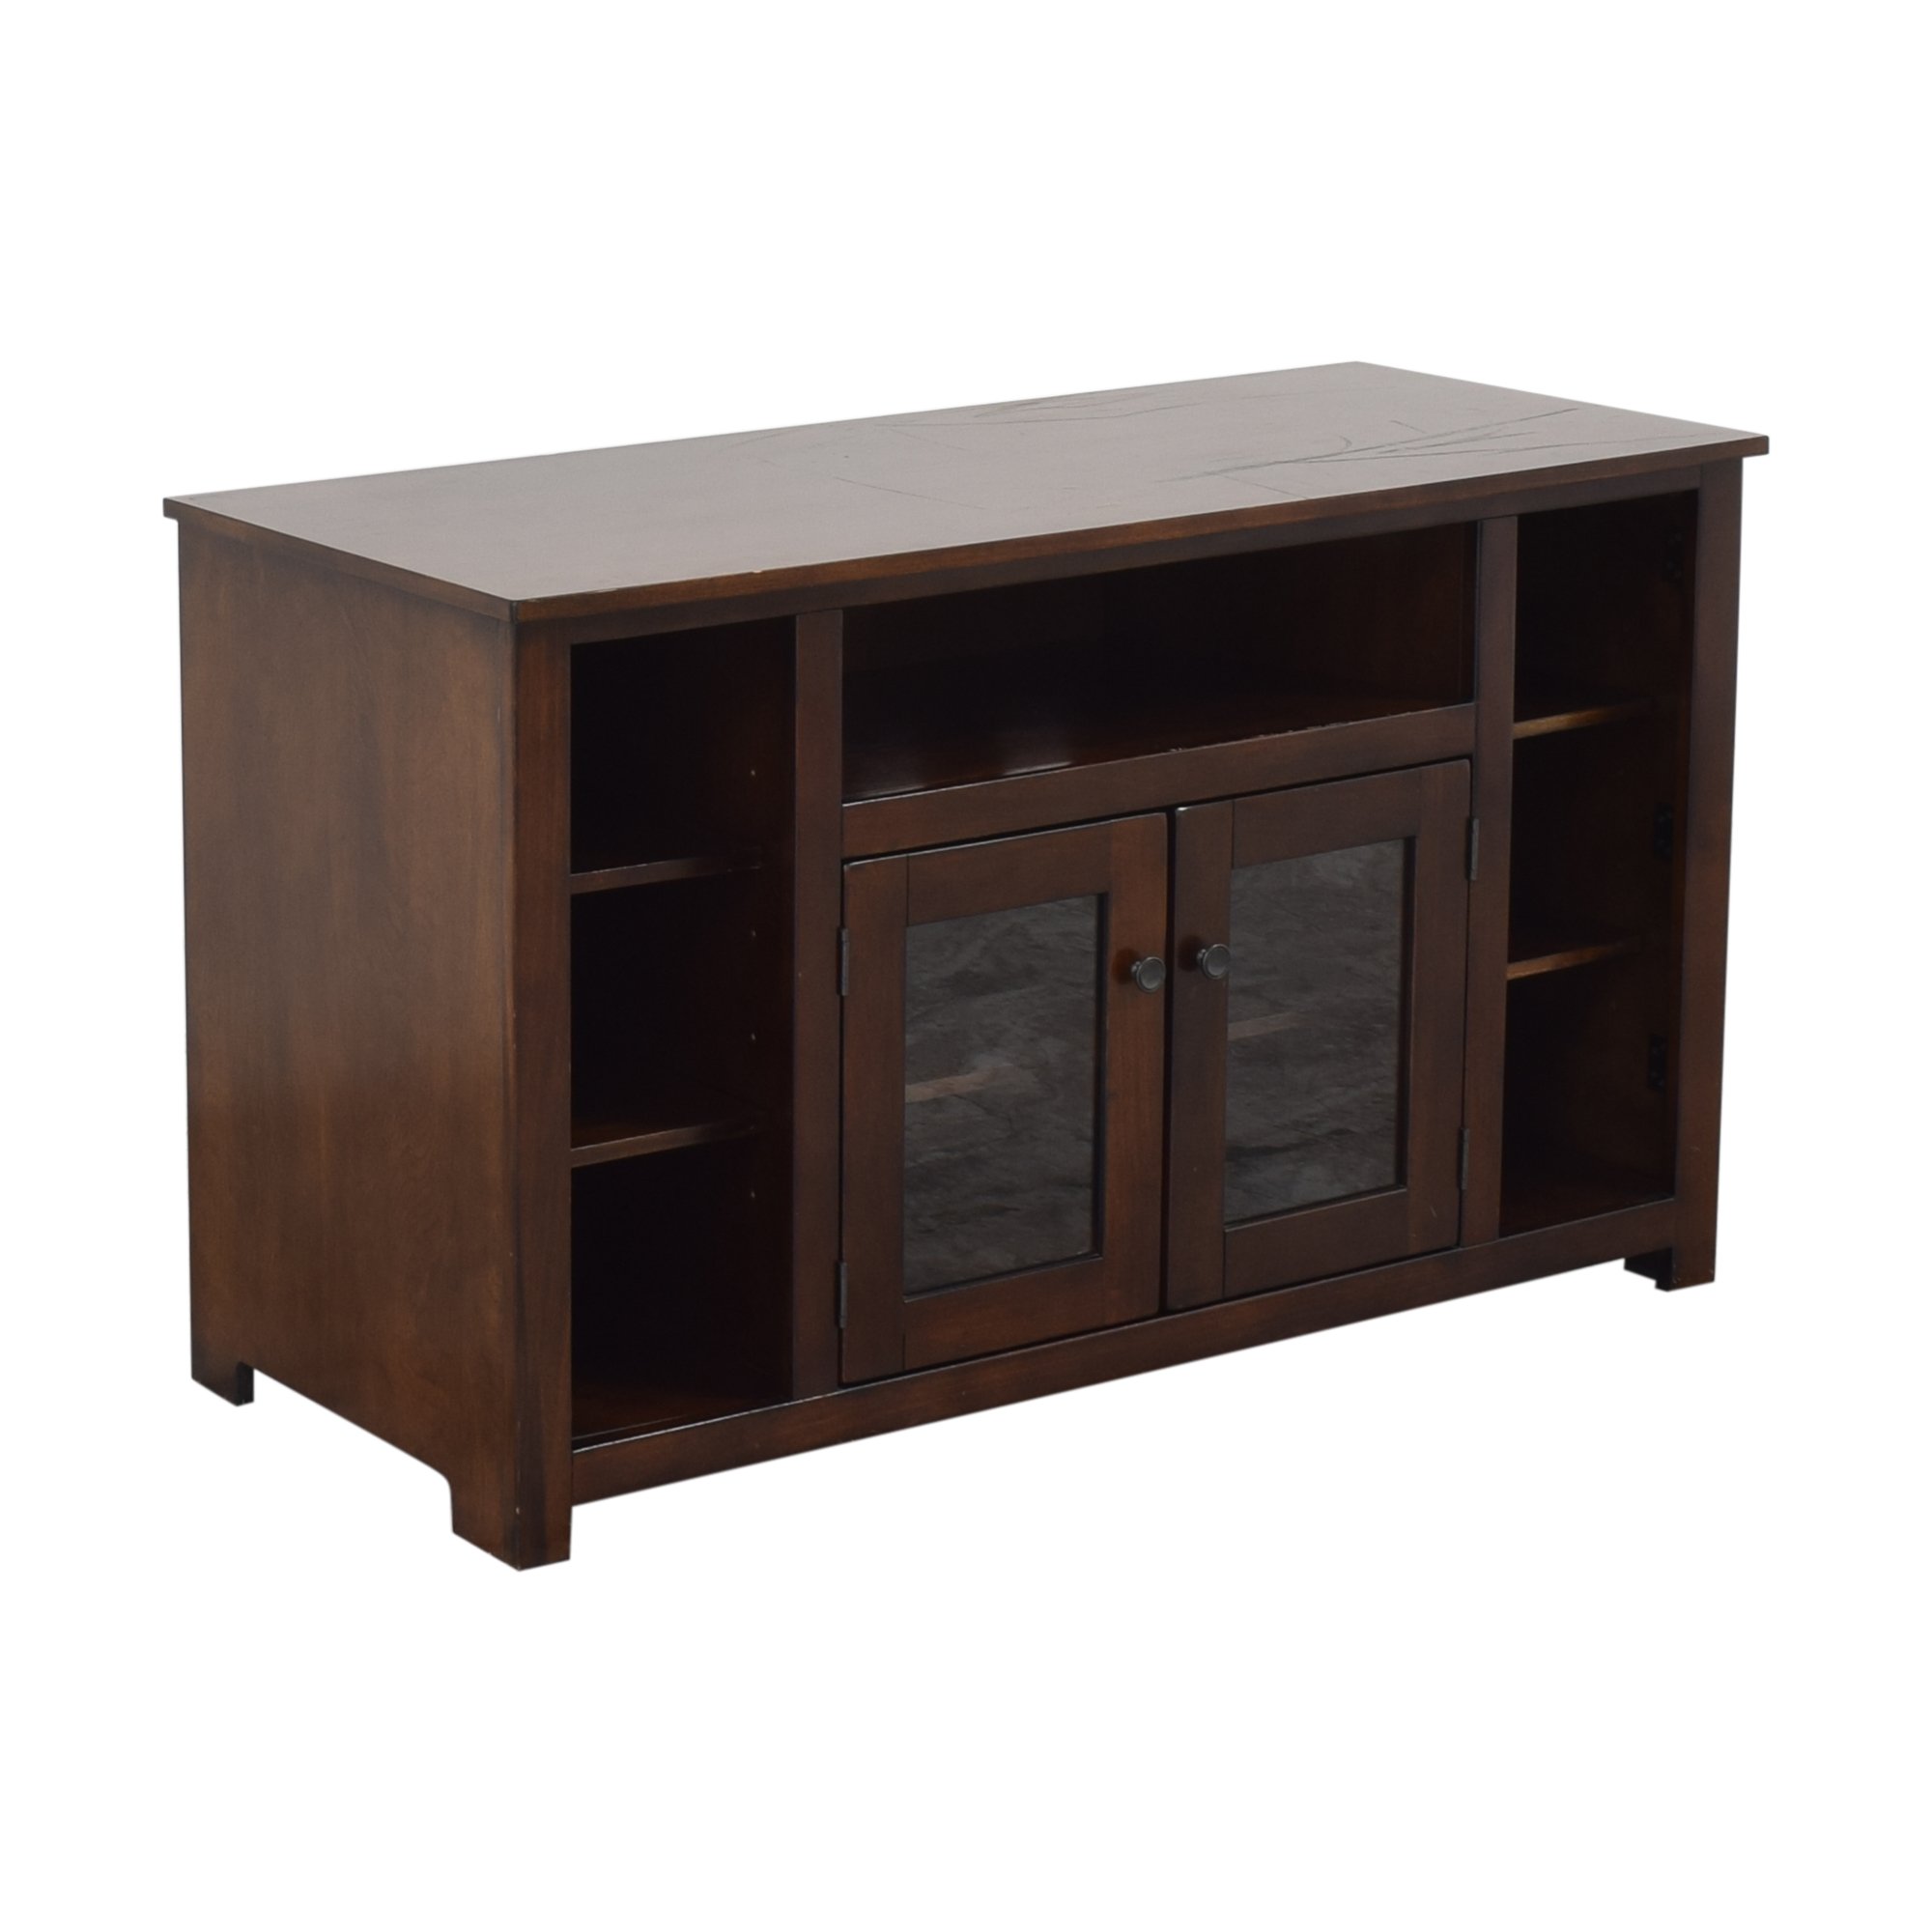 Ashley Furniture Ashley Furniture Signature Design Media Console